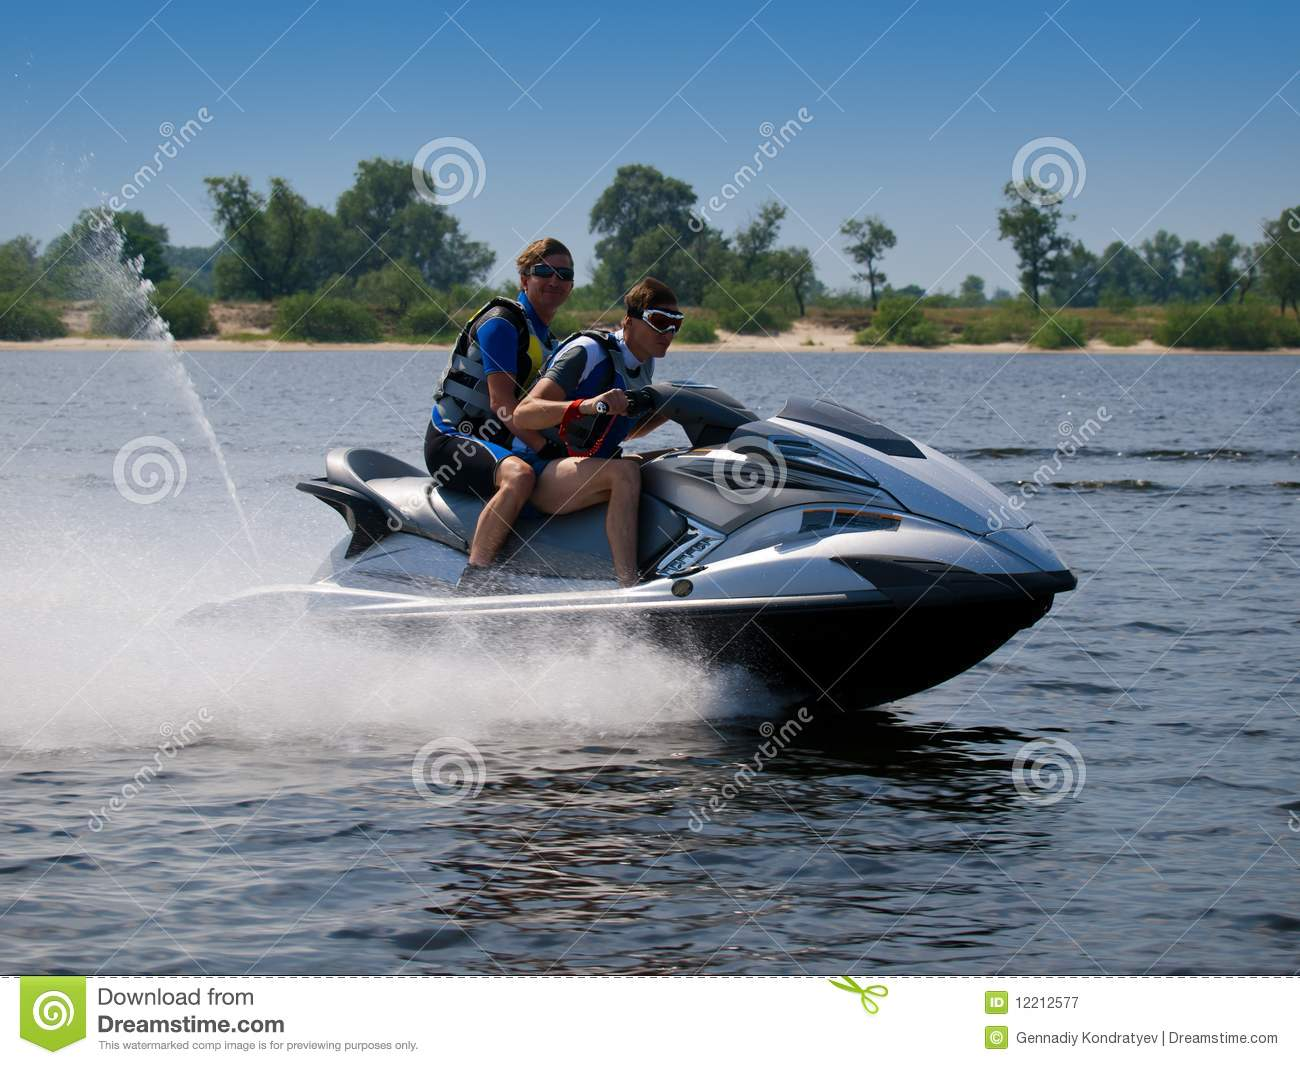 Seadoo Prices >> Couple Men On Jet Ski In The River Royalty Free Stock Photography - Image: 12212577